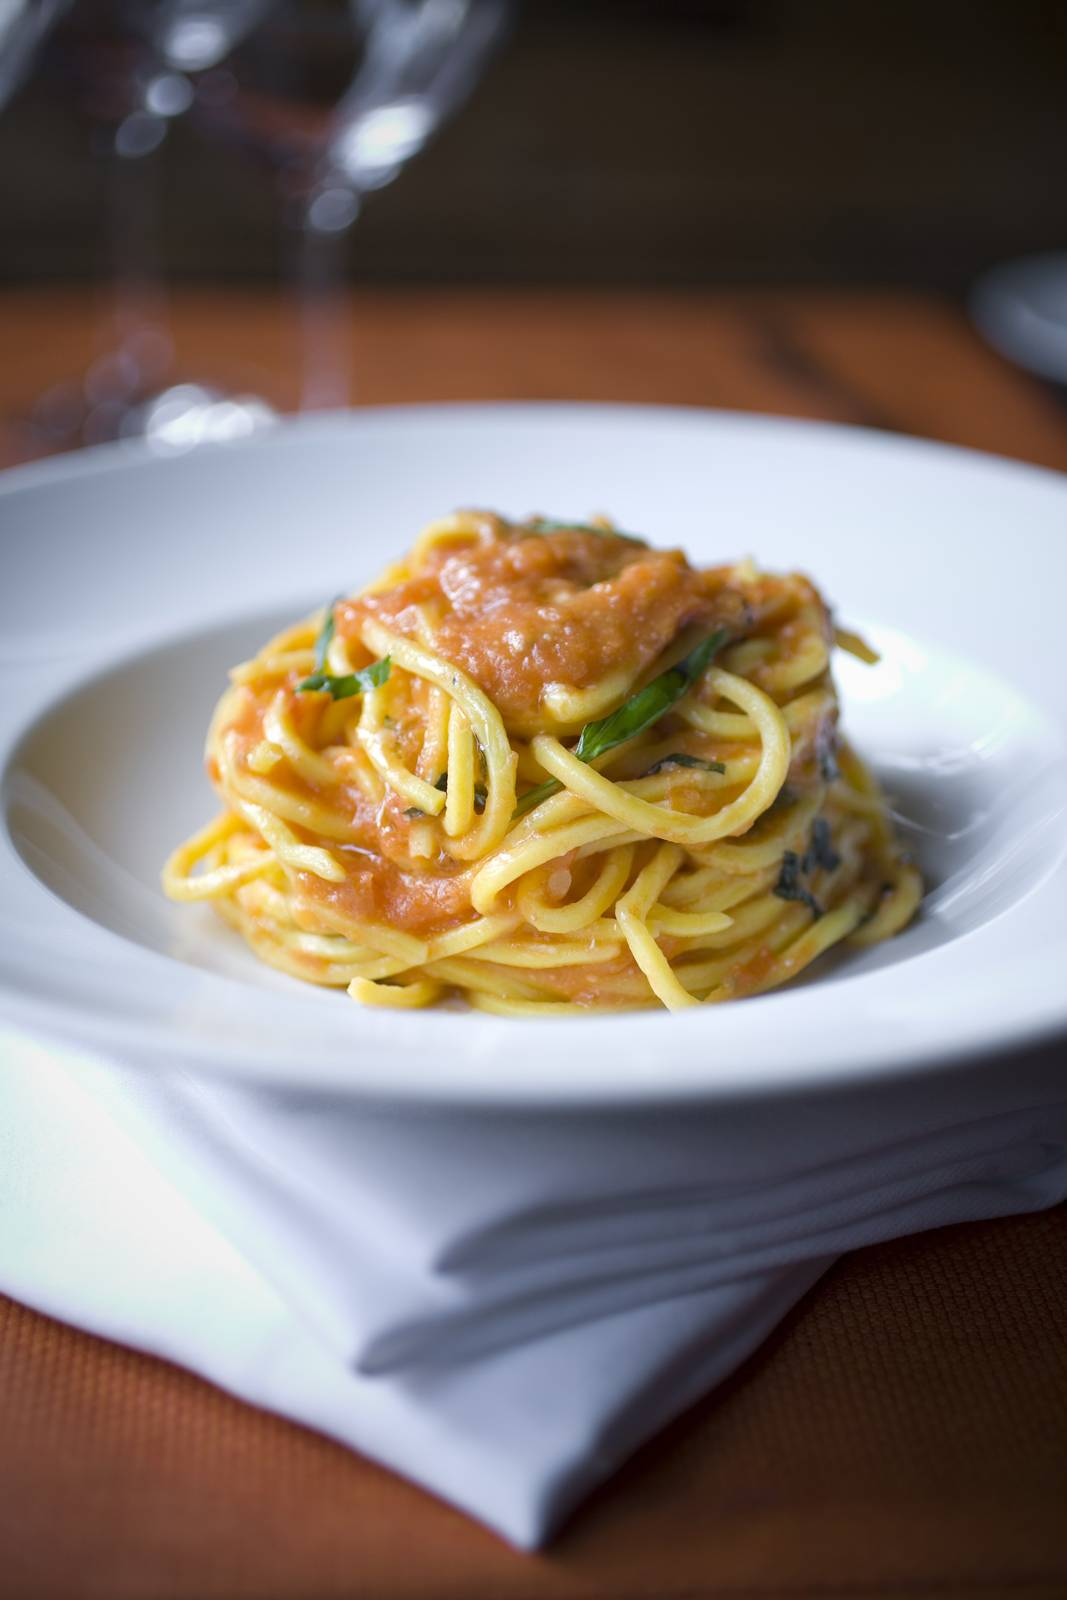 Cooler weather means hearty food ... and pasta.